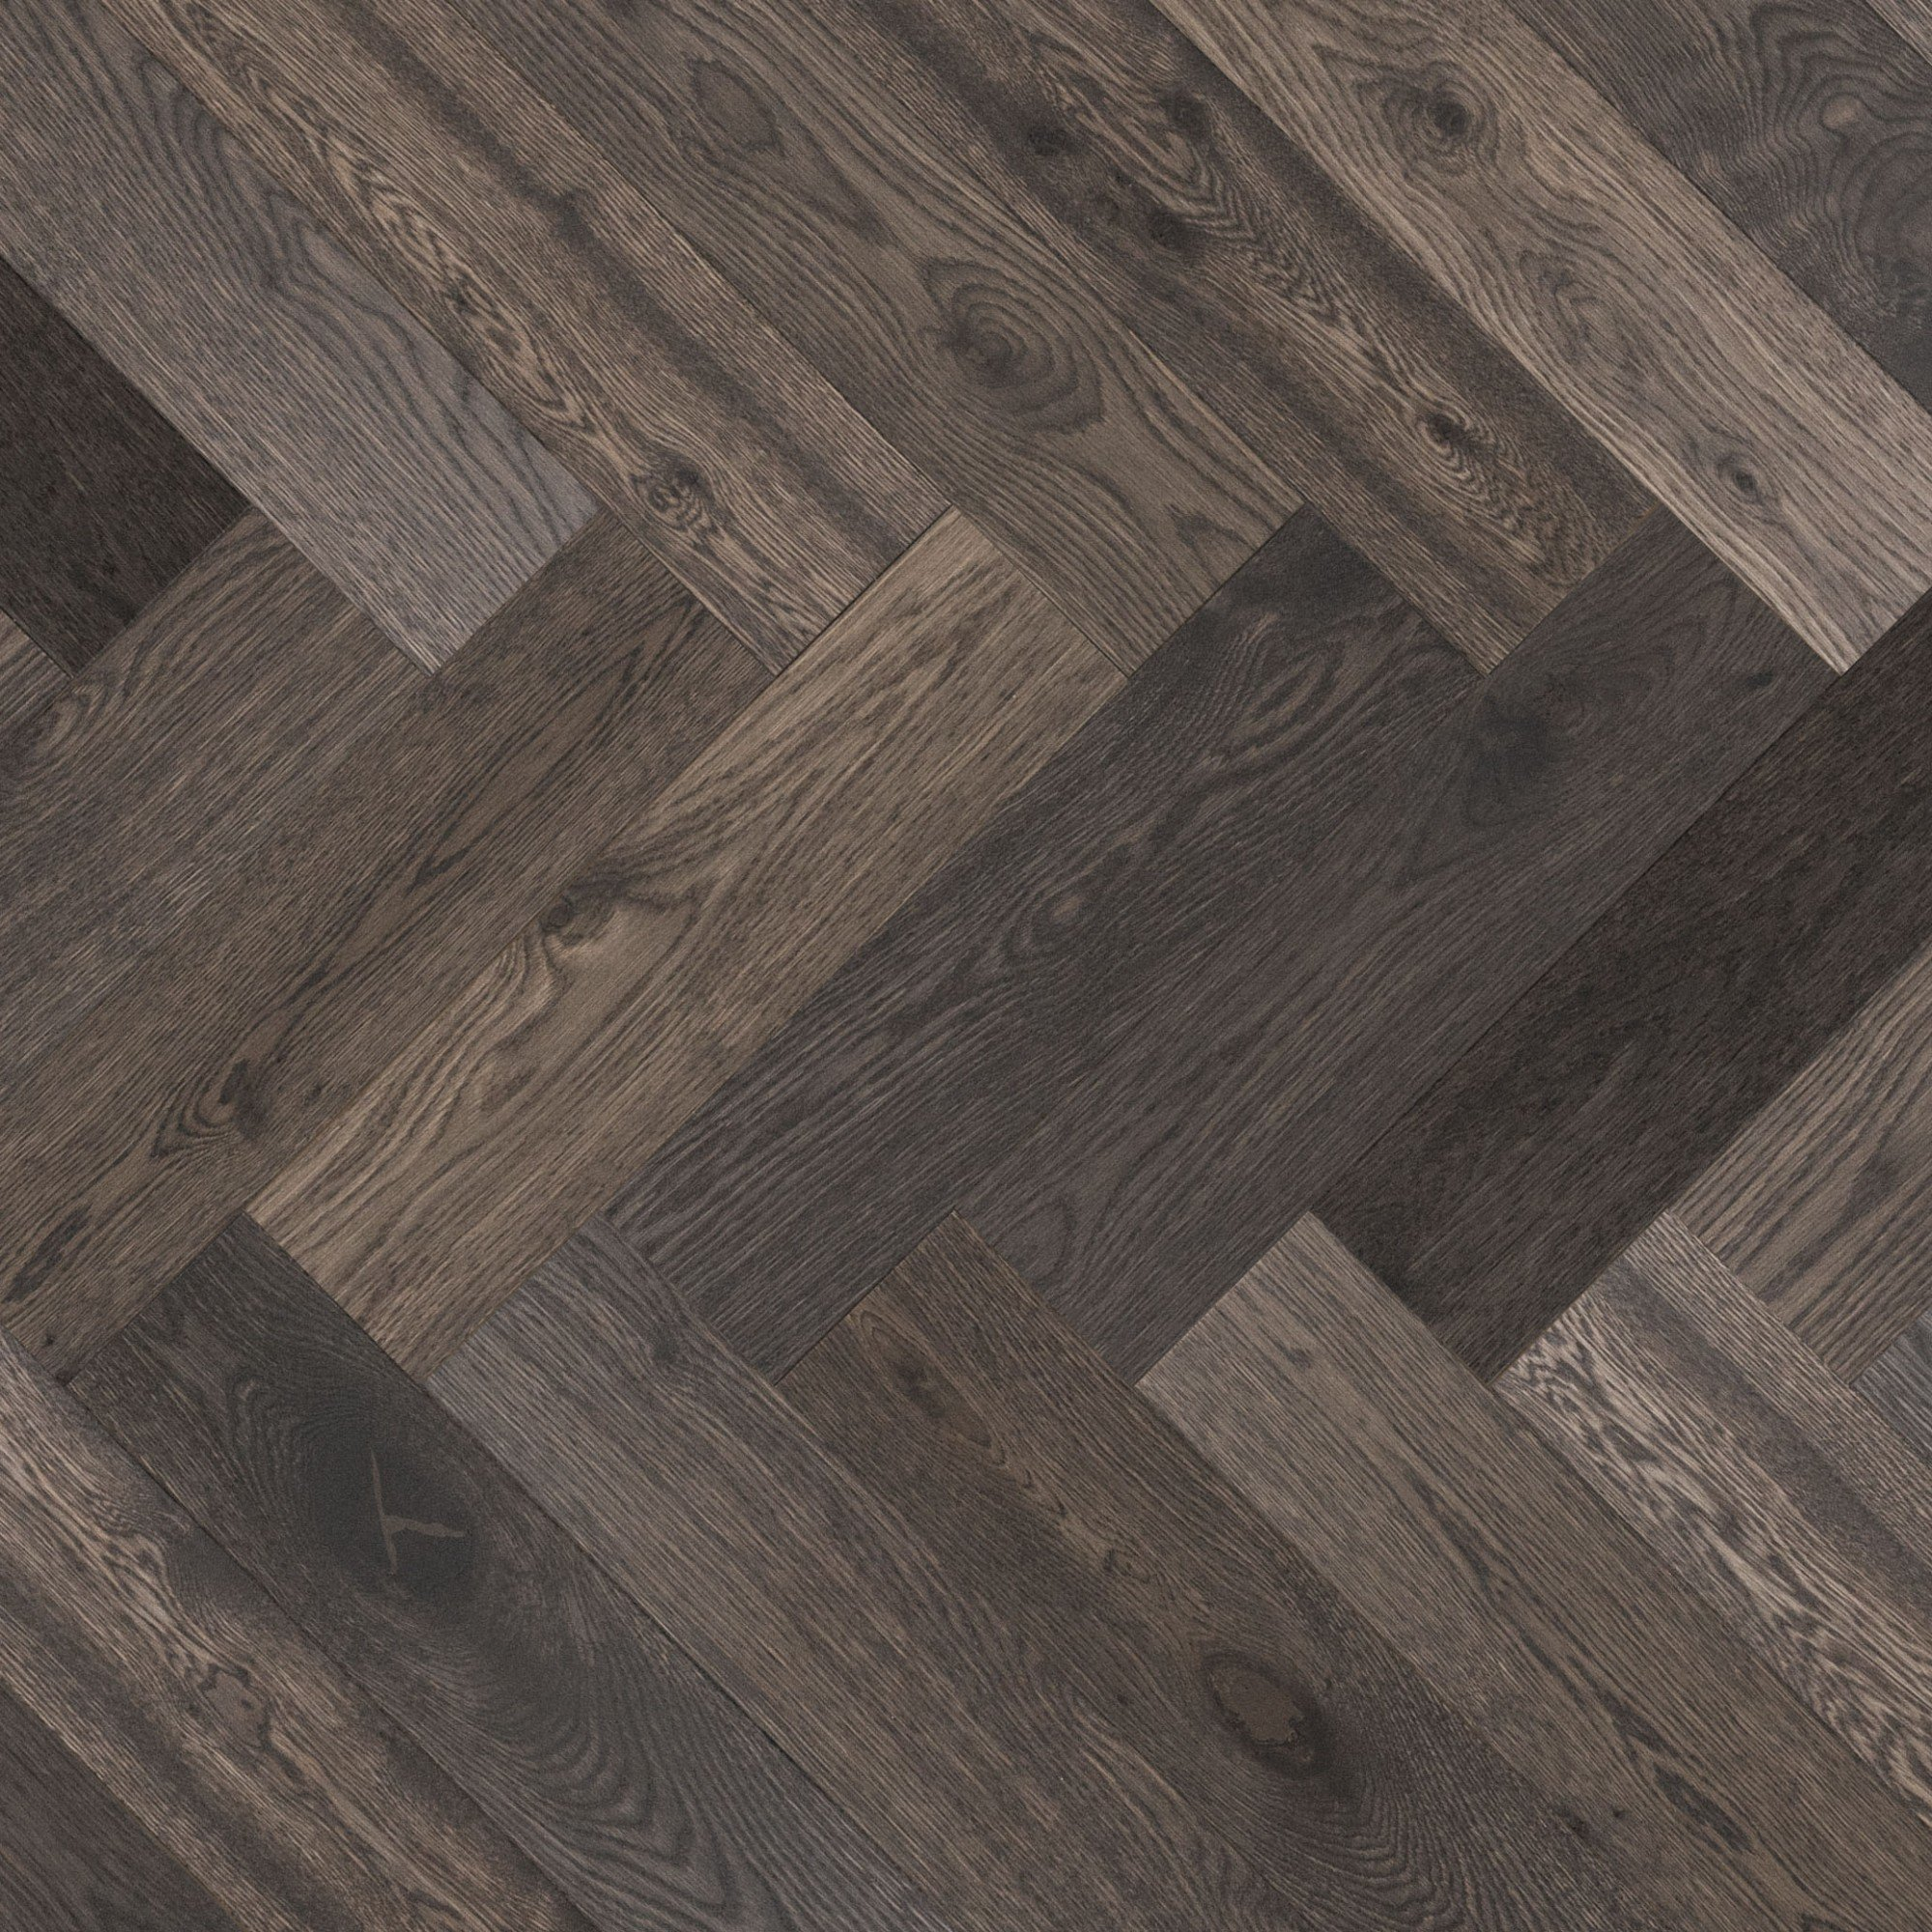 White Oak Lunar Eclipse Character Brushed - Floor image